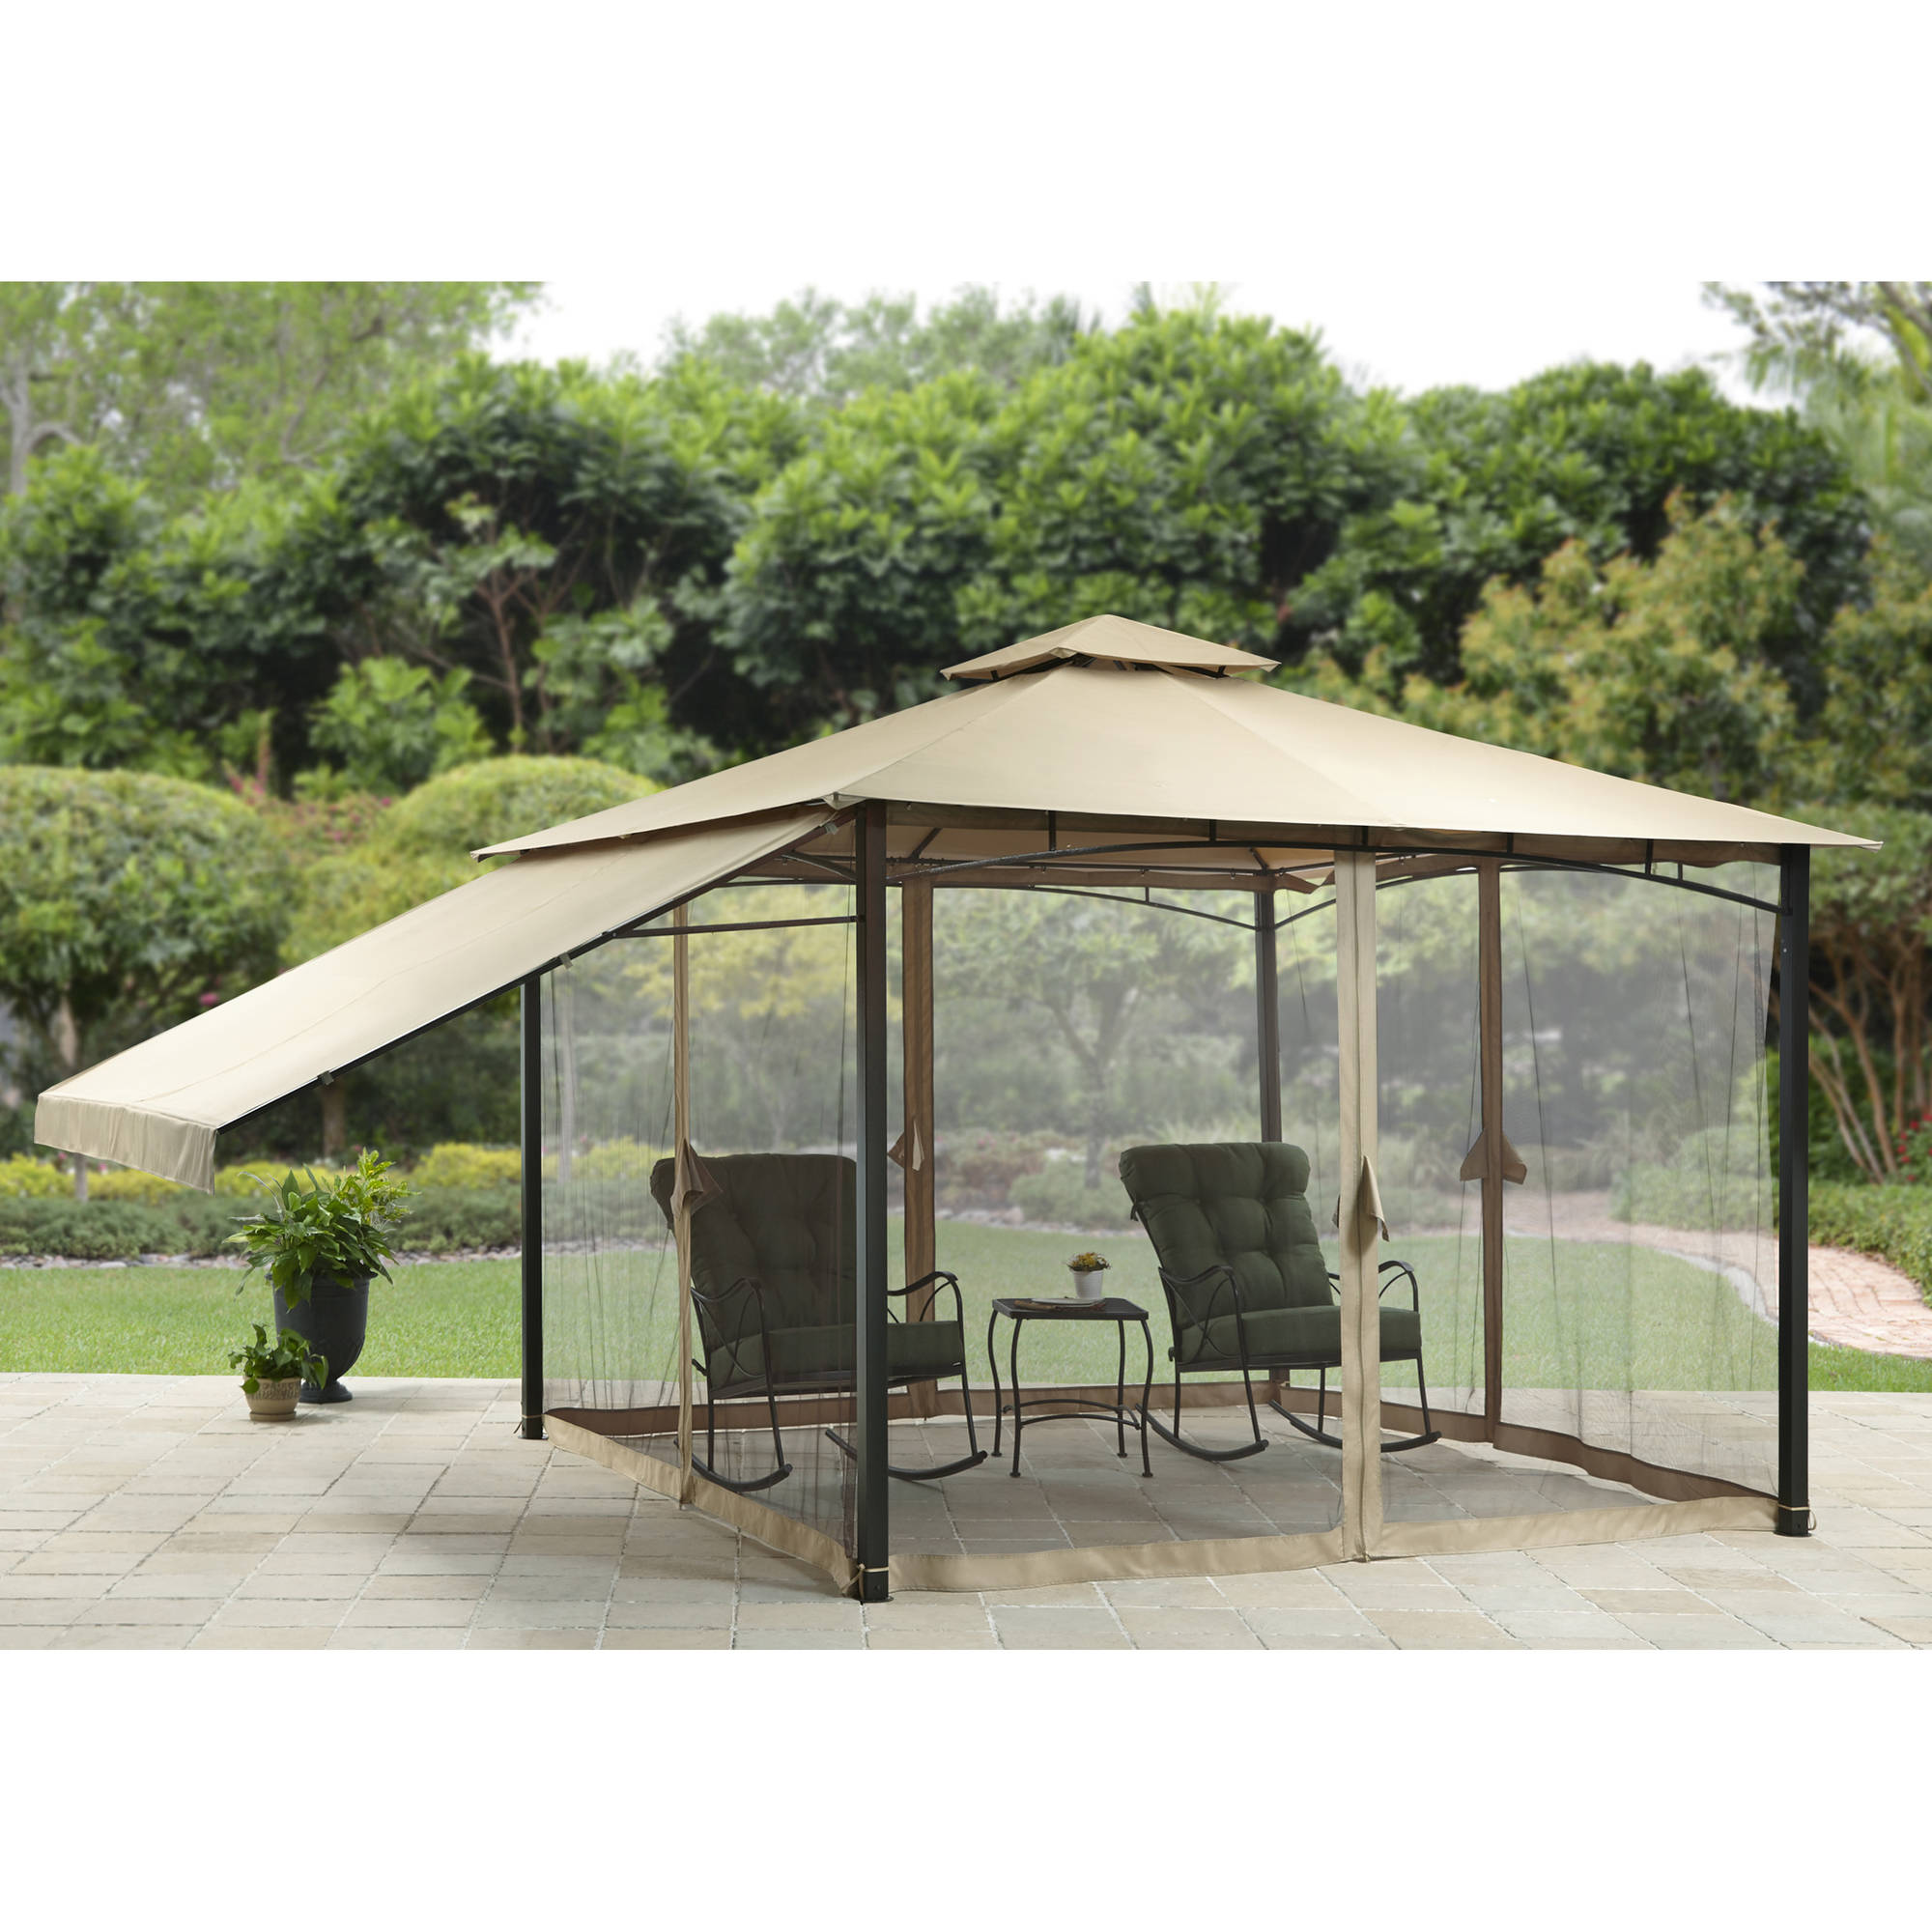 Better Homes and Garden Canal Drive 11R... $222.28  sc 1 st  dealepic & $129.59 Northwest Territory Glacier Lake Cabin Tent 14 x 14 - dealepic